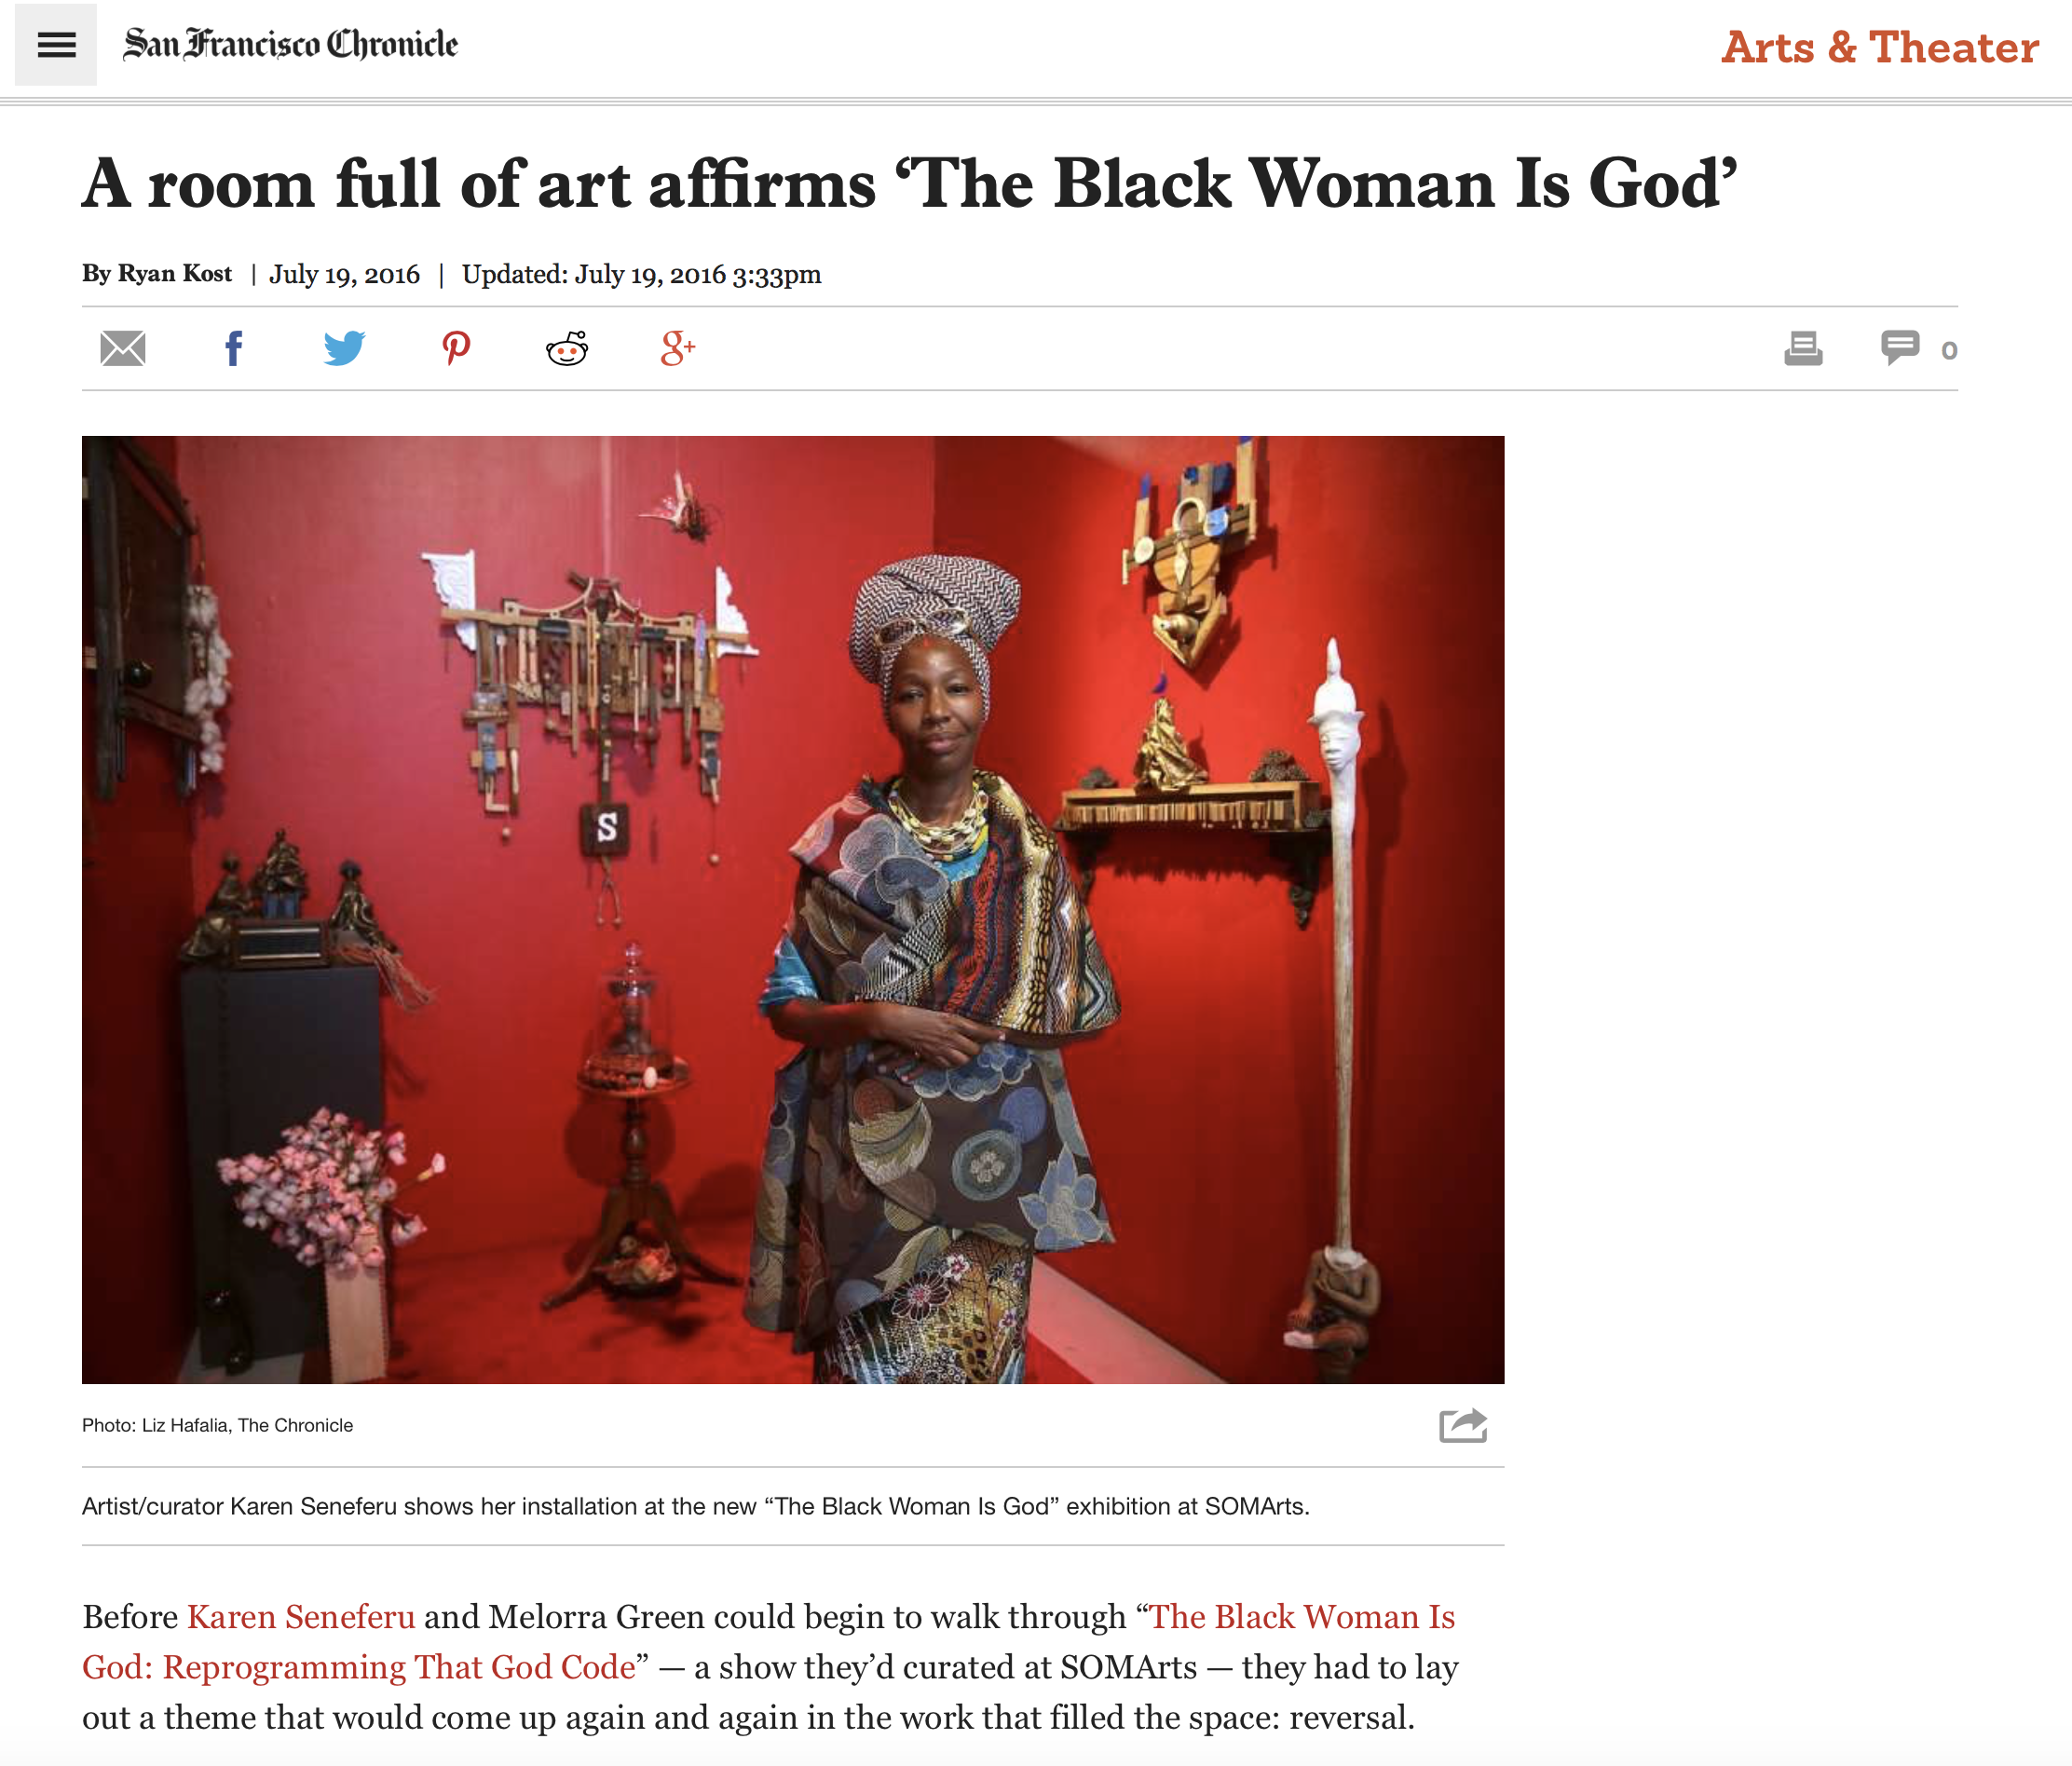 """Kost, Ryan. """"A Room Full of Art Affirms 'The Black Woman Is God'"""" A Room Full of Art Affirms 'The Black Woman Is God'. San Francisco Chronicle, 19 June 2016. Web. 21 July 2016."""